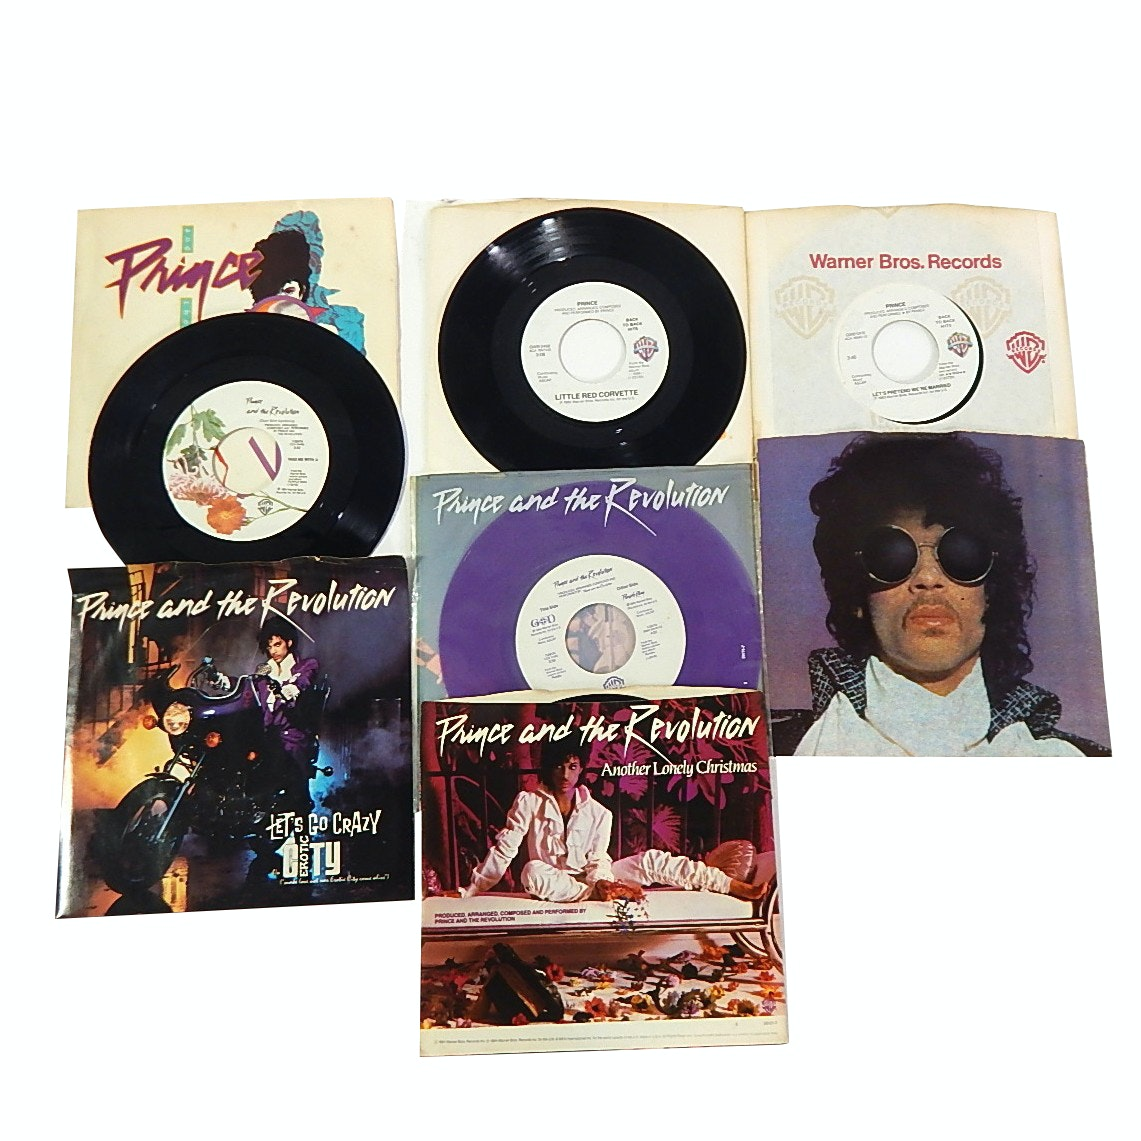 Prince 45 RPM Record Lot with Purple Rain and More - 7 Count Lot